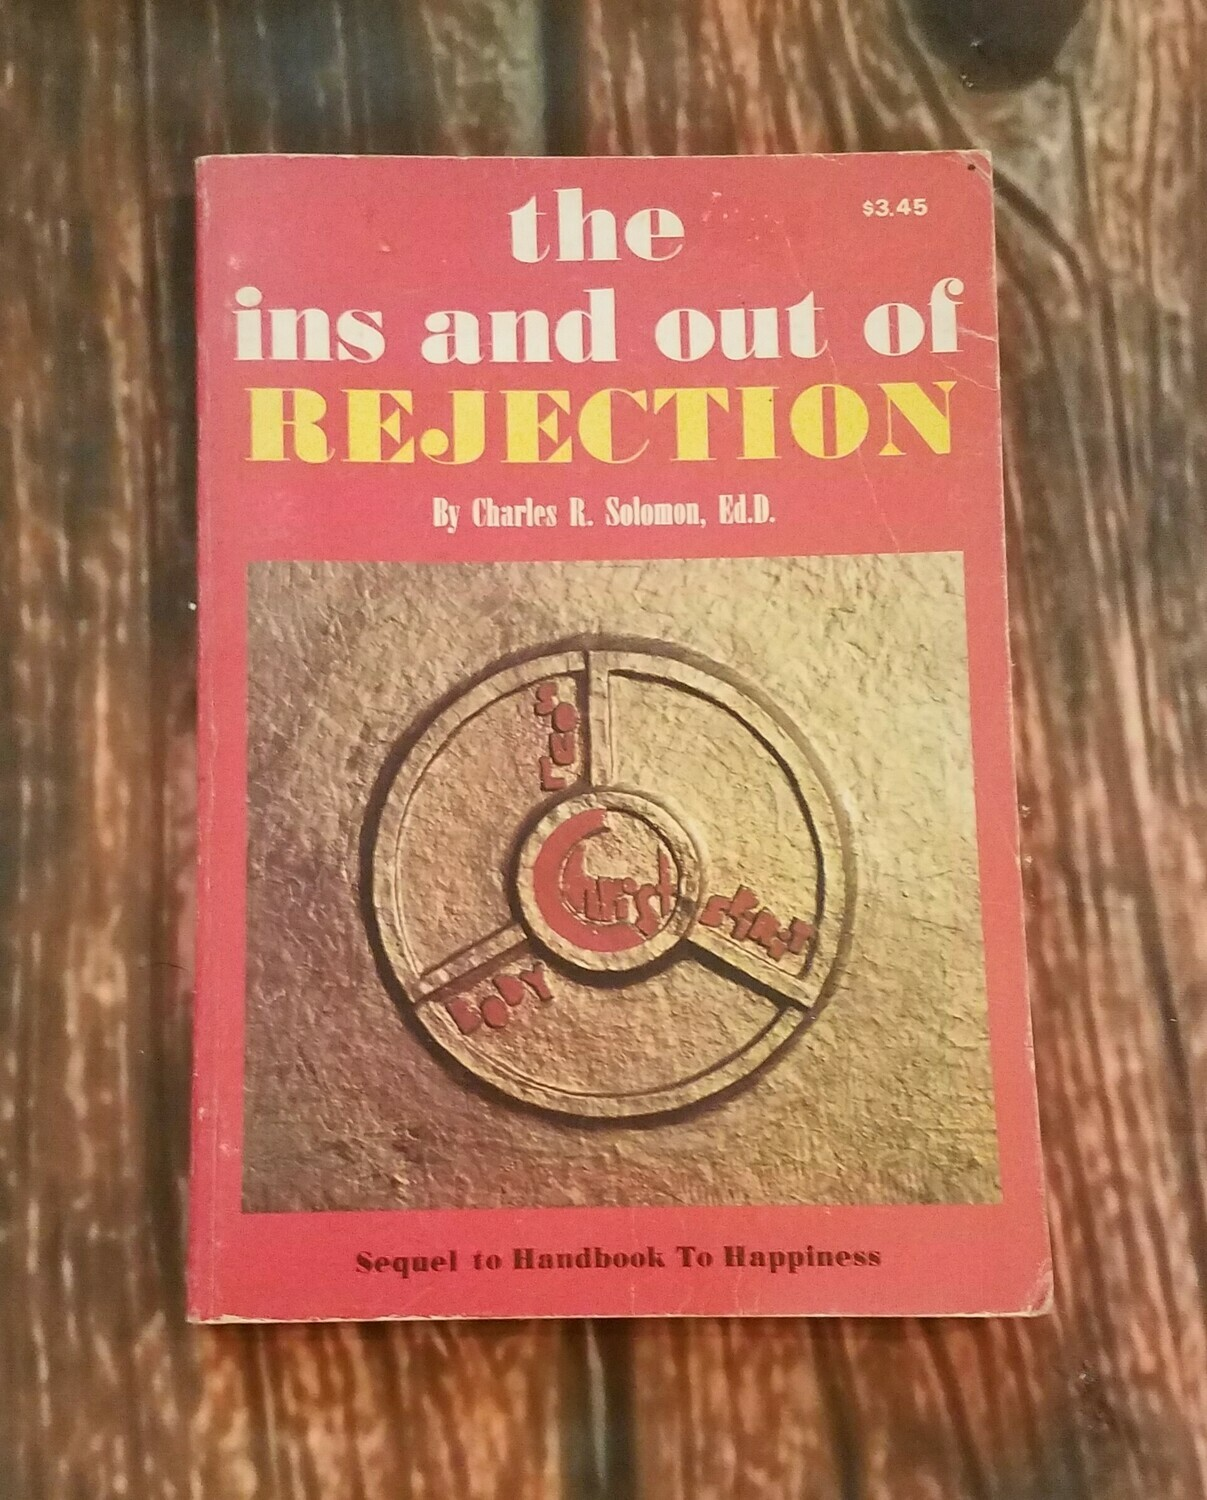 The Ins and Out of Rejection by Charles R. Solomon, Ed.D.